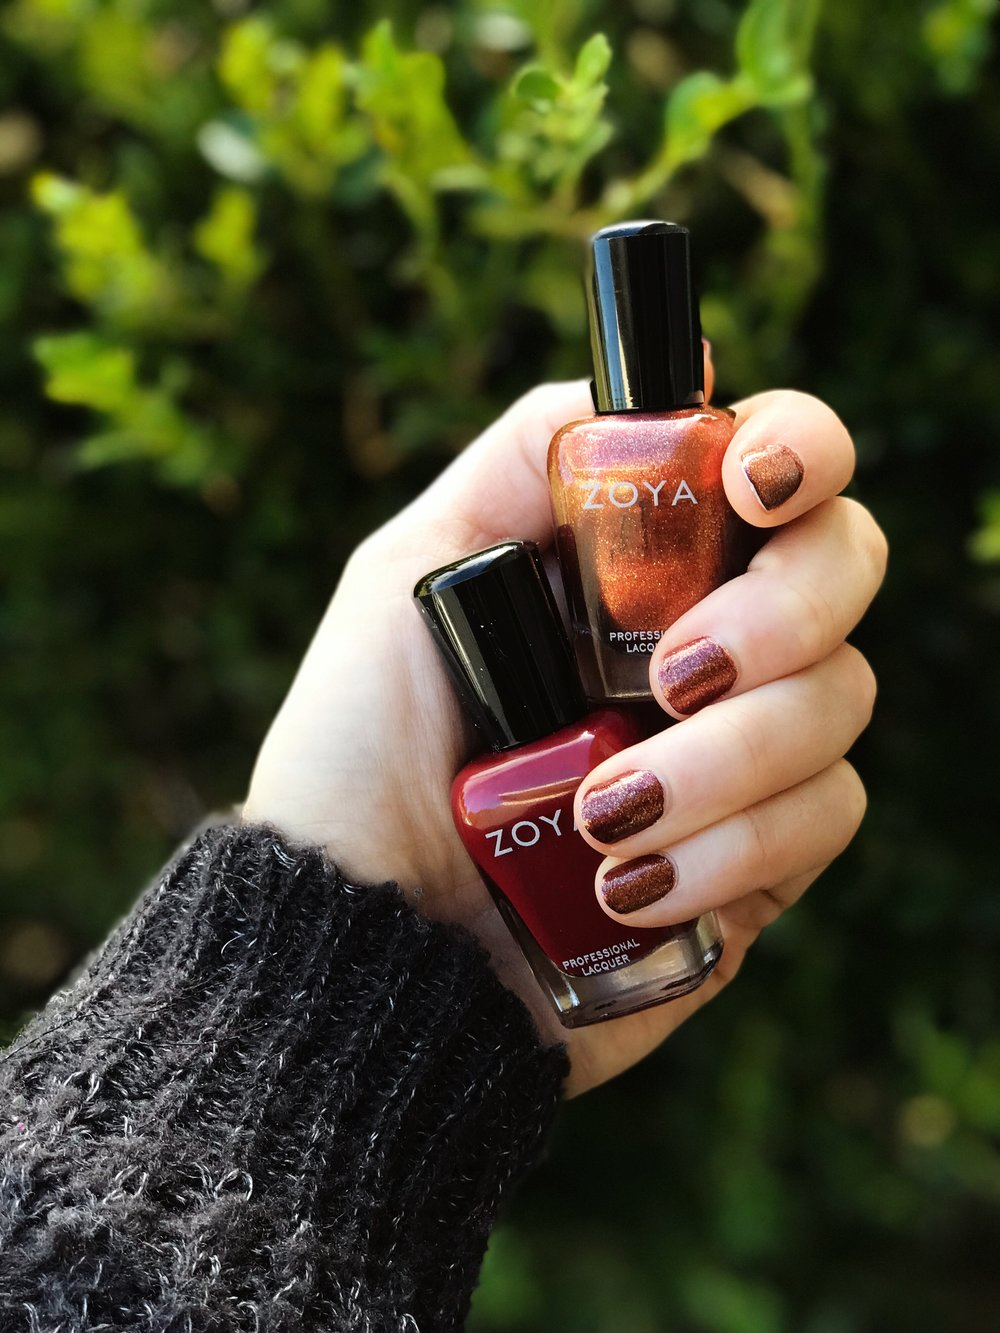 Zoya Autumn Nail Polish Sparkle Topper over Alyssa | MALLORIE OWENS